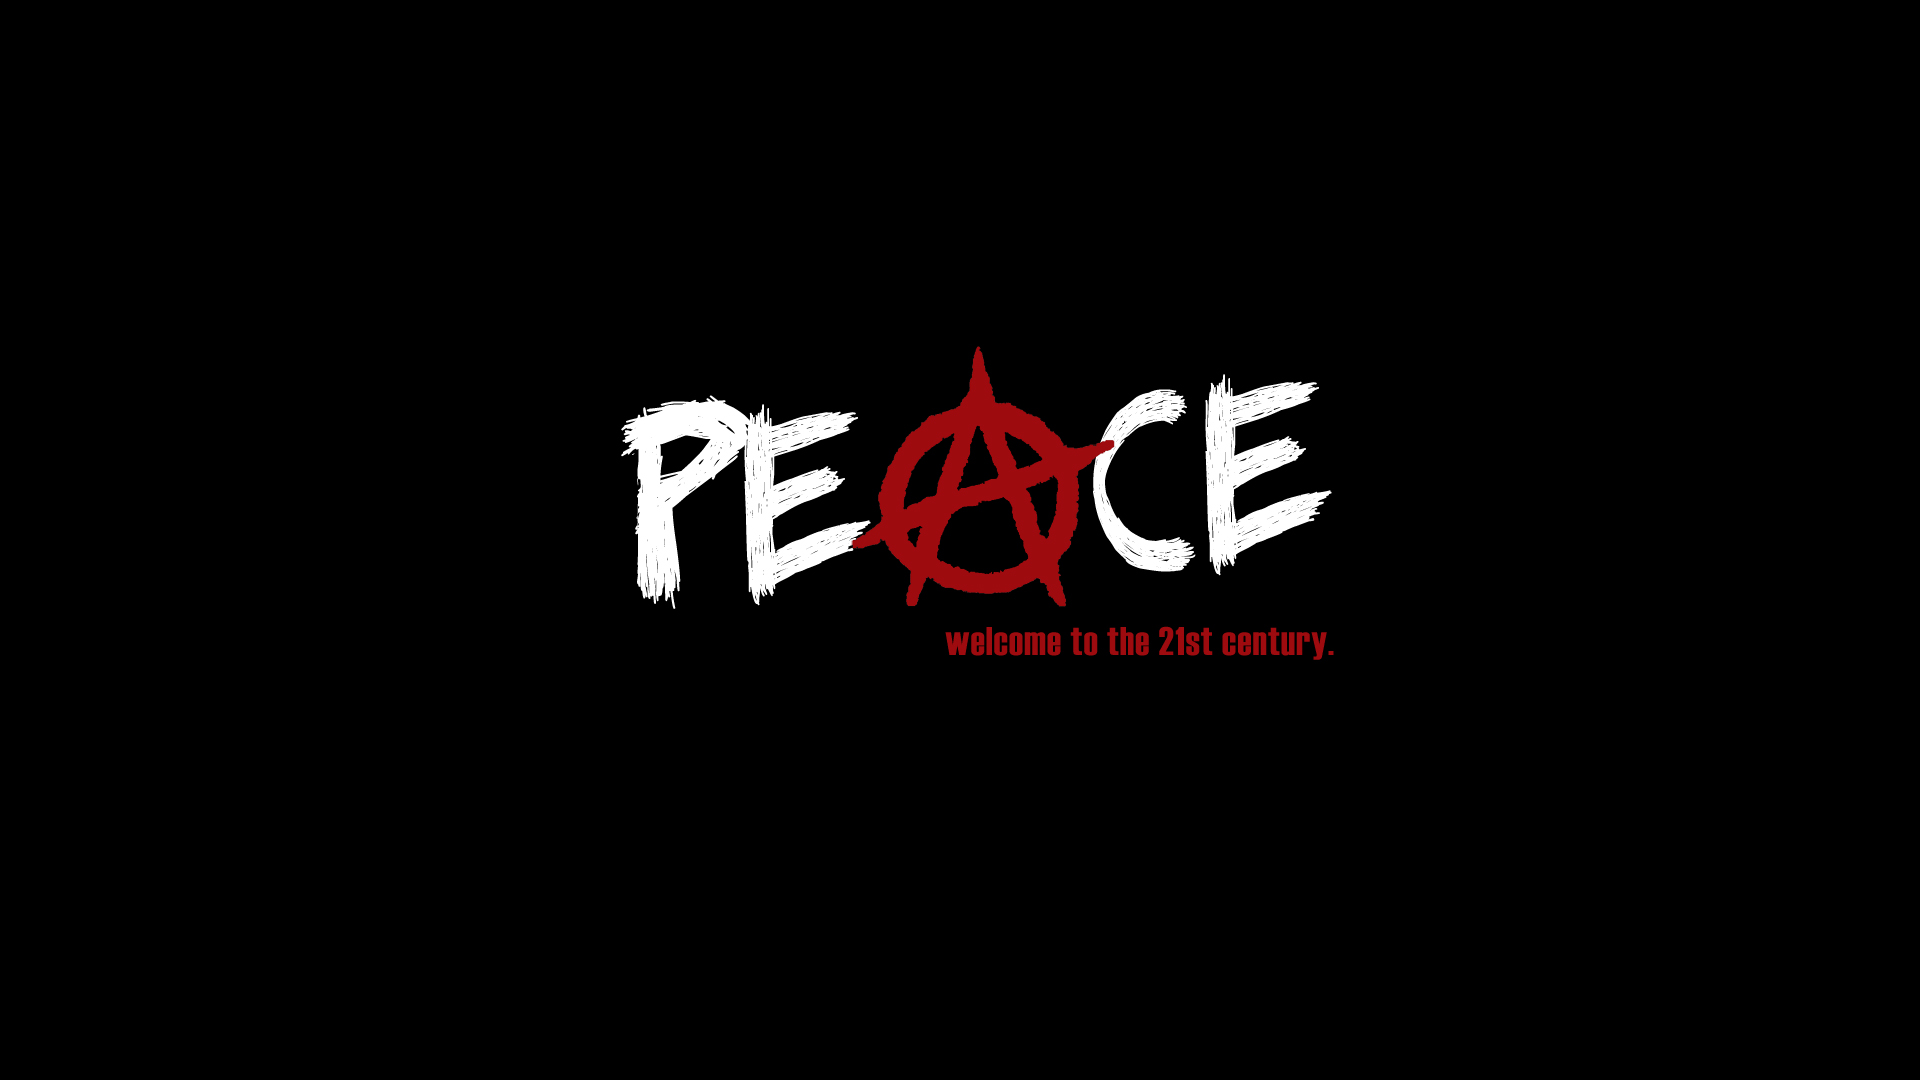 Dark anarchy peace urban wallpaper 1920x1080 29391 WallpaperUP 1920x1080